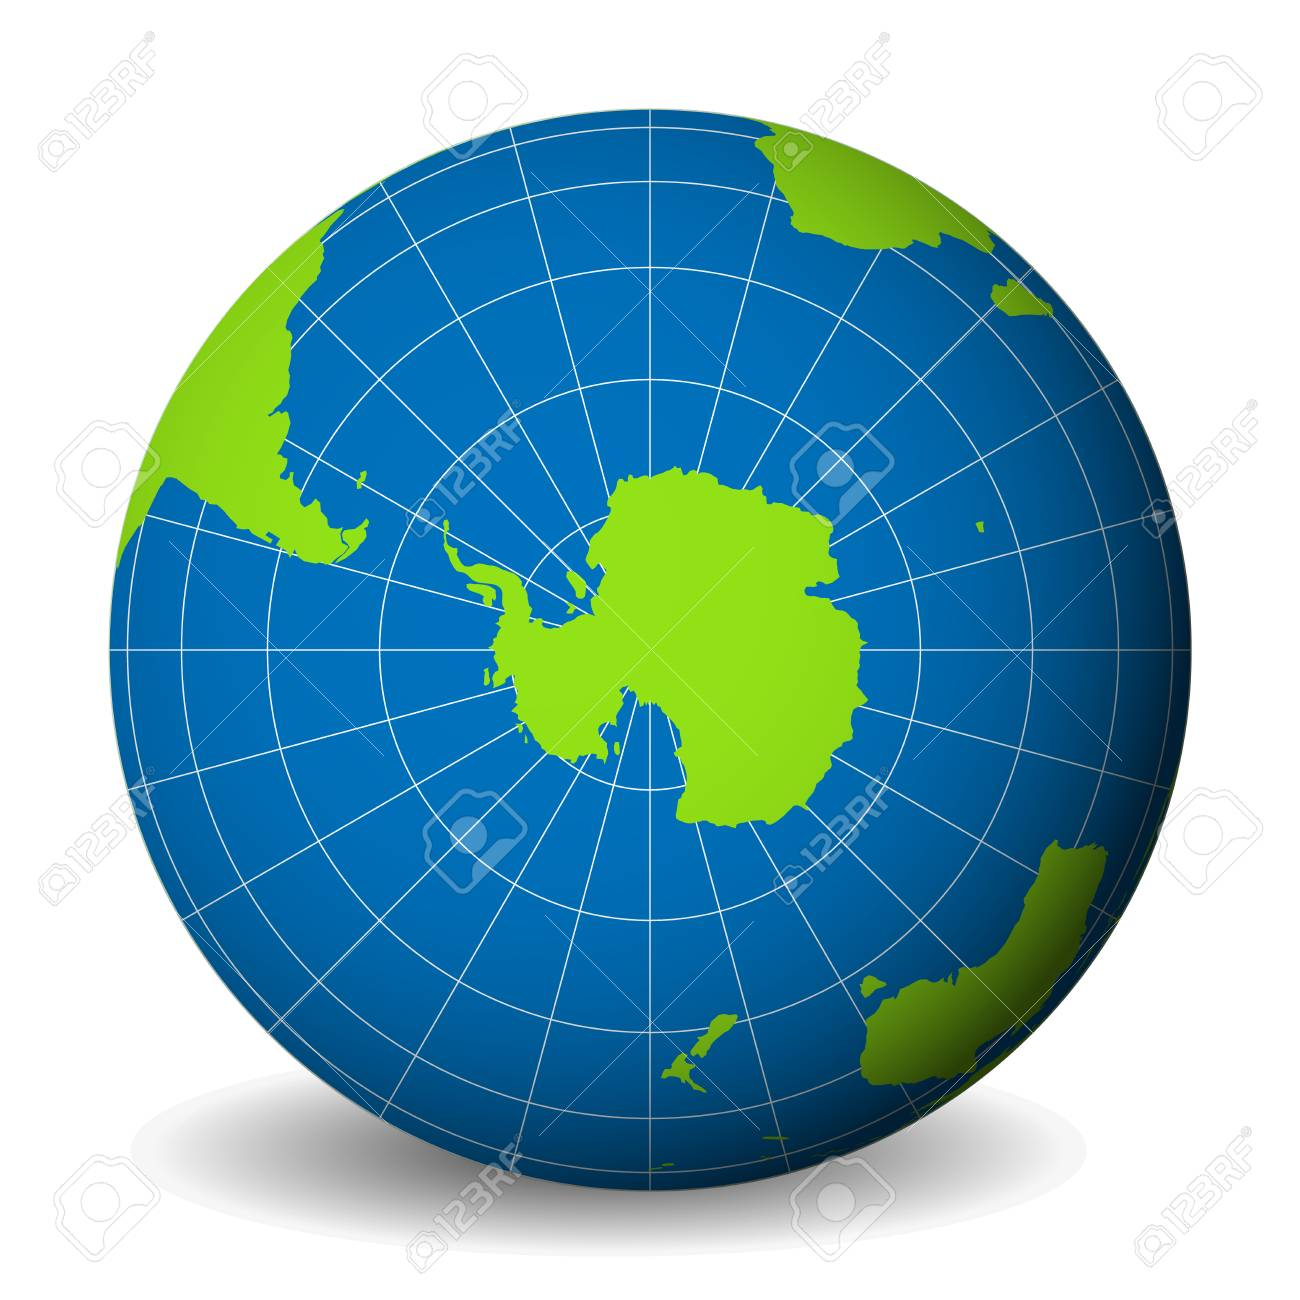 South Pole World Map.Earth Globe With Green World Map And Blue Seas And Oceans Focused